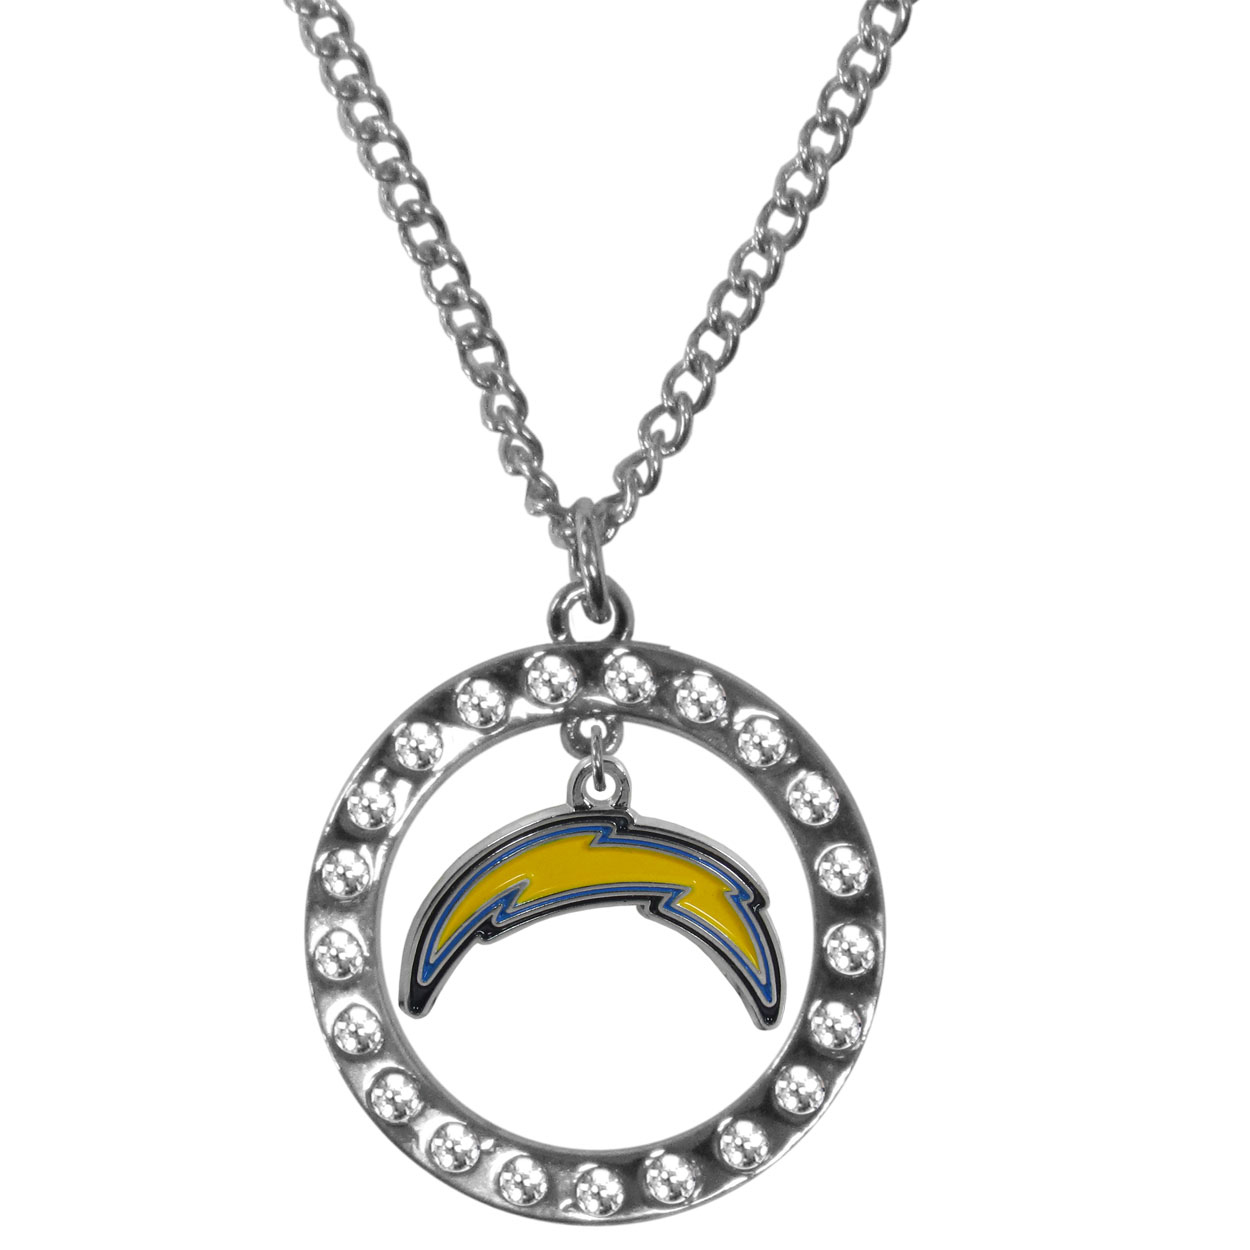 Los Angeles Chargers Rhinestone Hoop Necklaces - Our Los Angeles Chargers rhinestone hoop necklace comes on an 18 inch chain and features a hoop covered in rhinestones with a high polish chrome finish and a cast and enameled team charm dangling in the center.